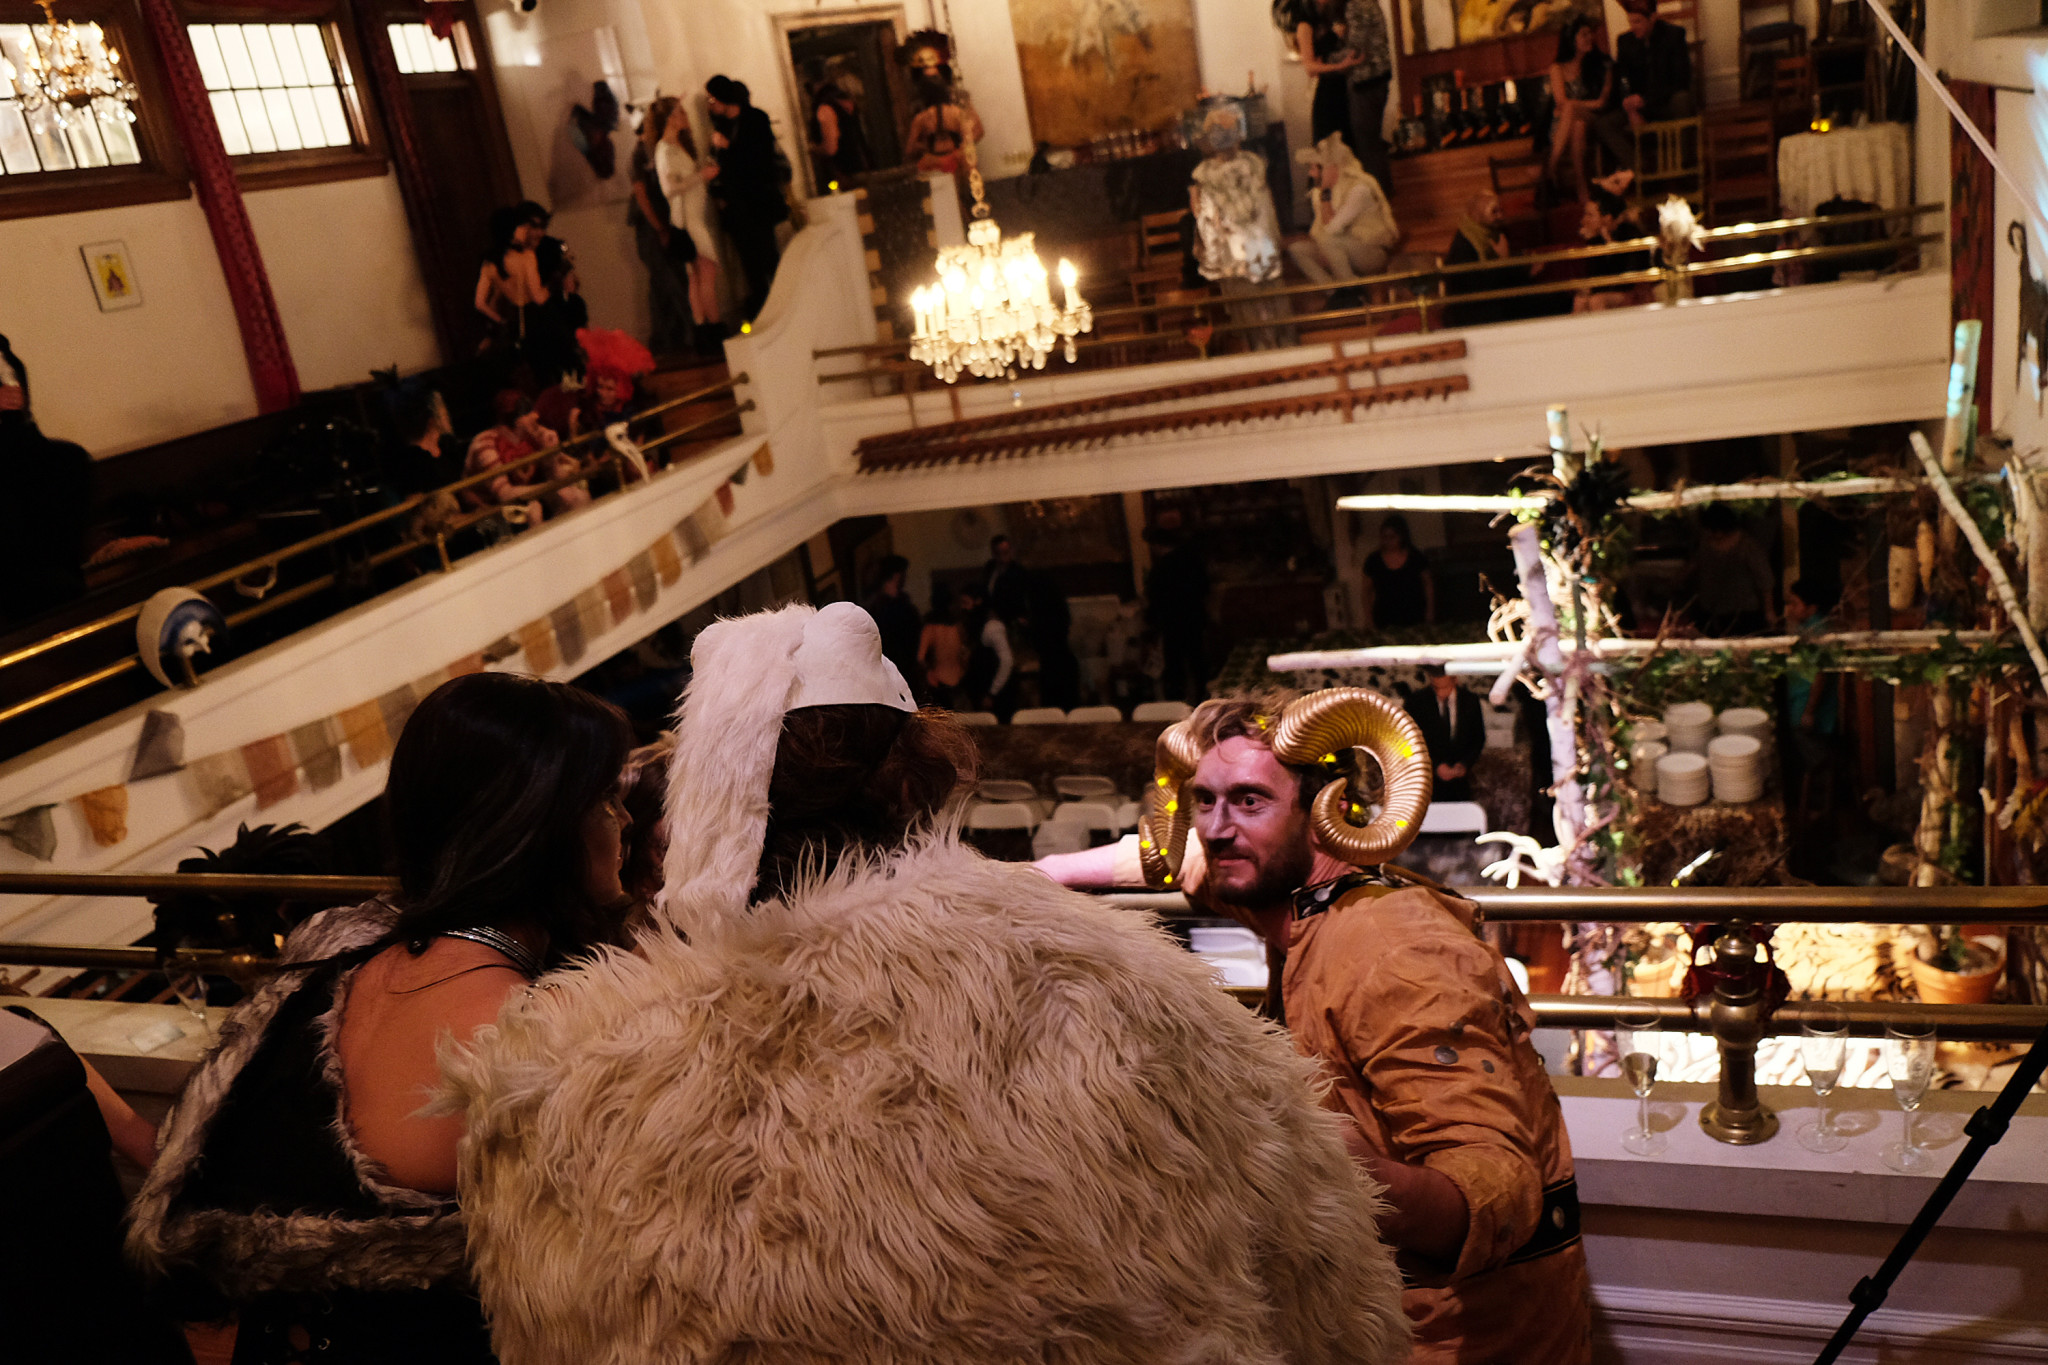 Costumed guests in the balcony of the couple's home, a former church building in Harlem.